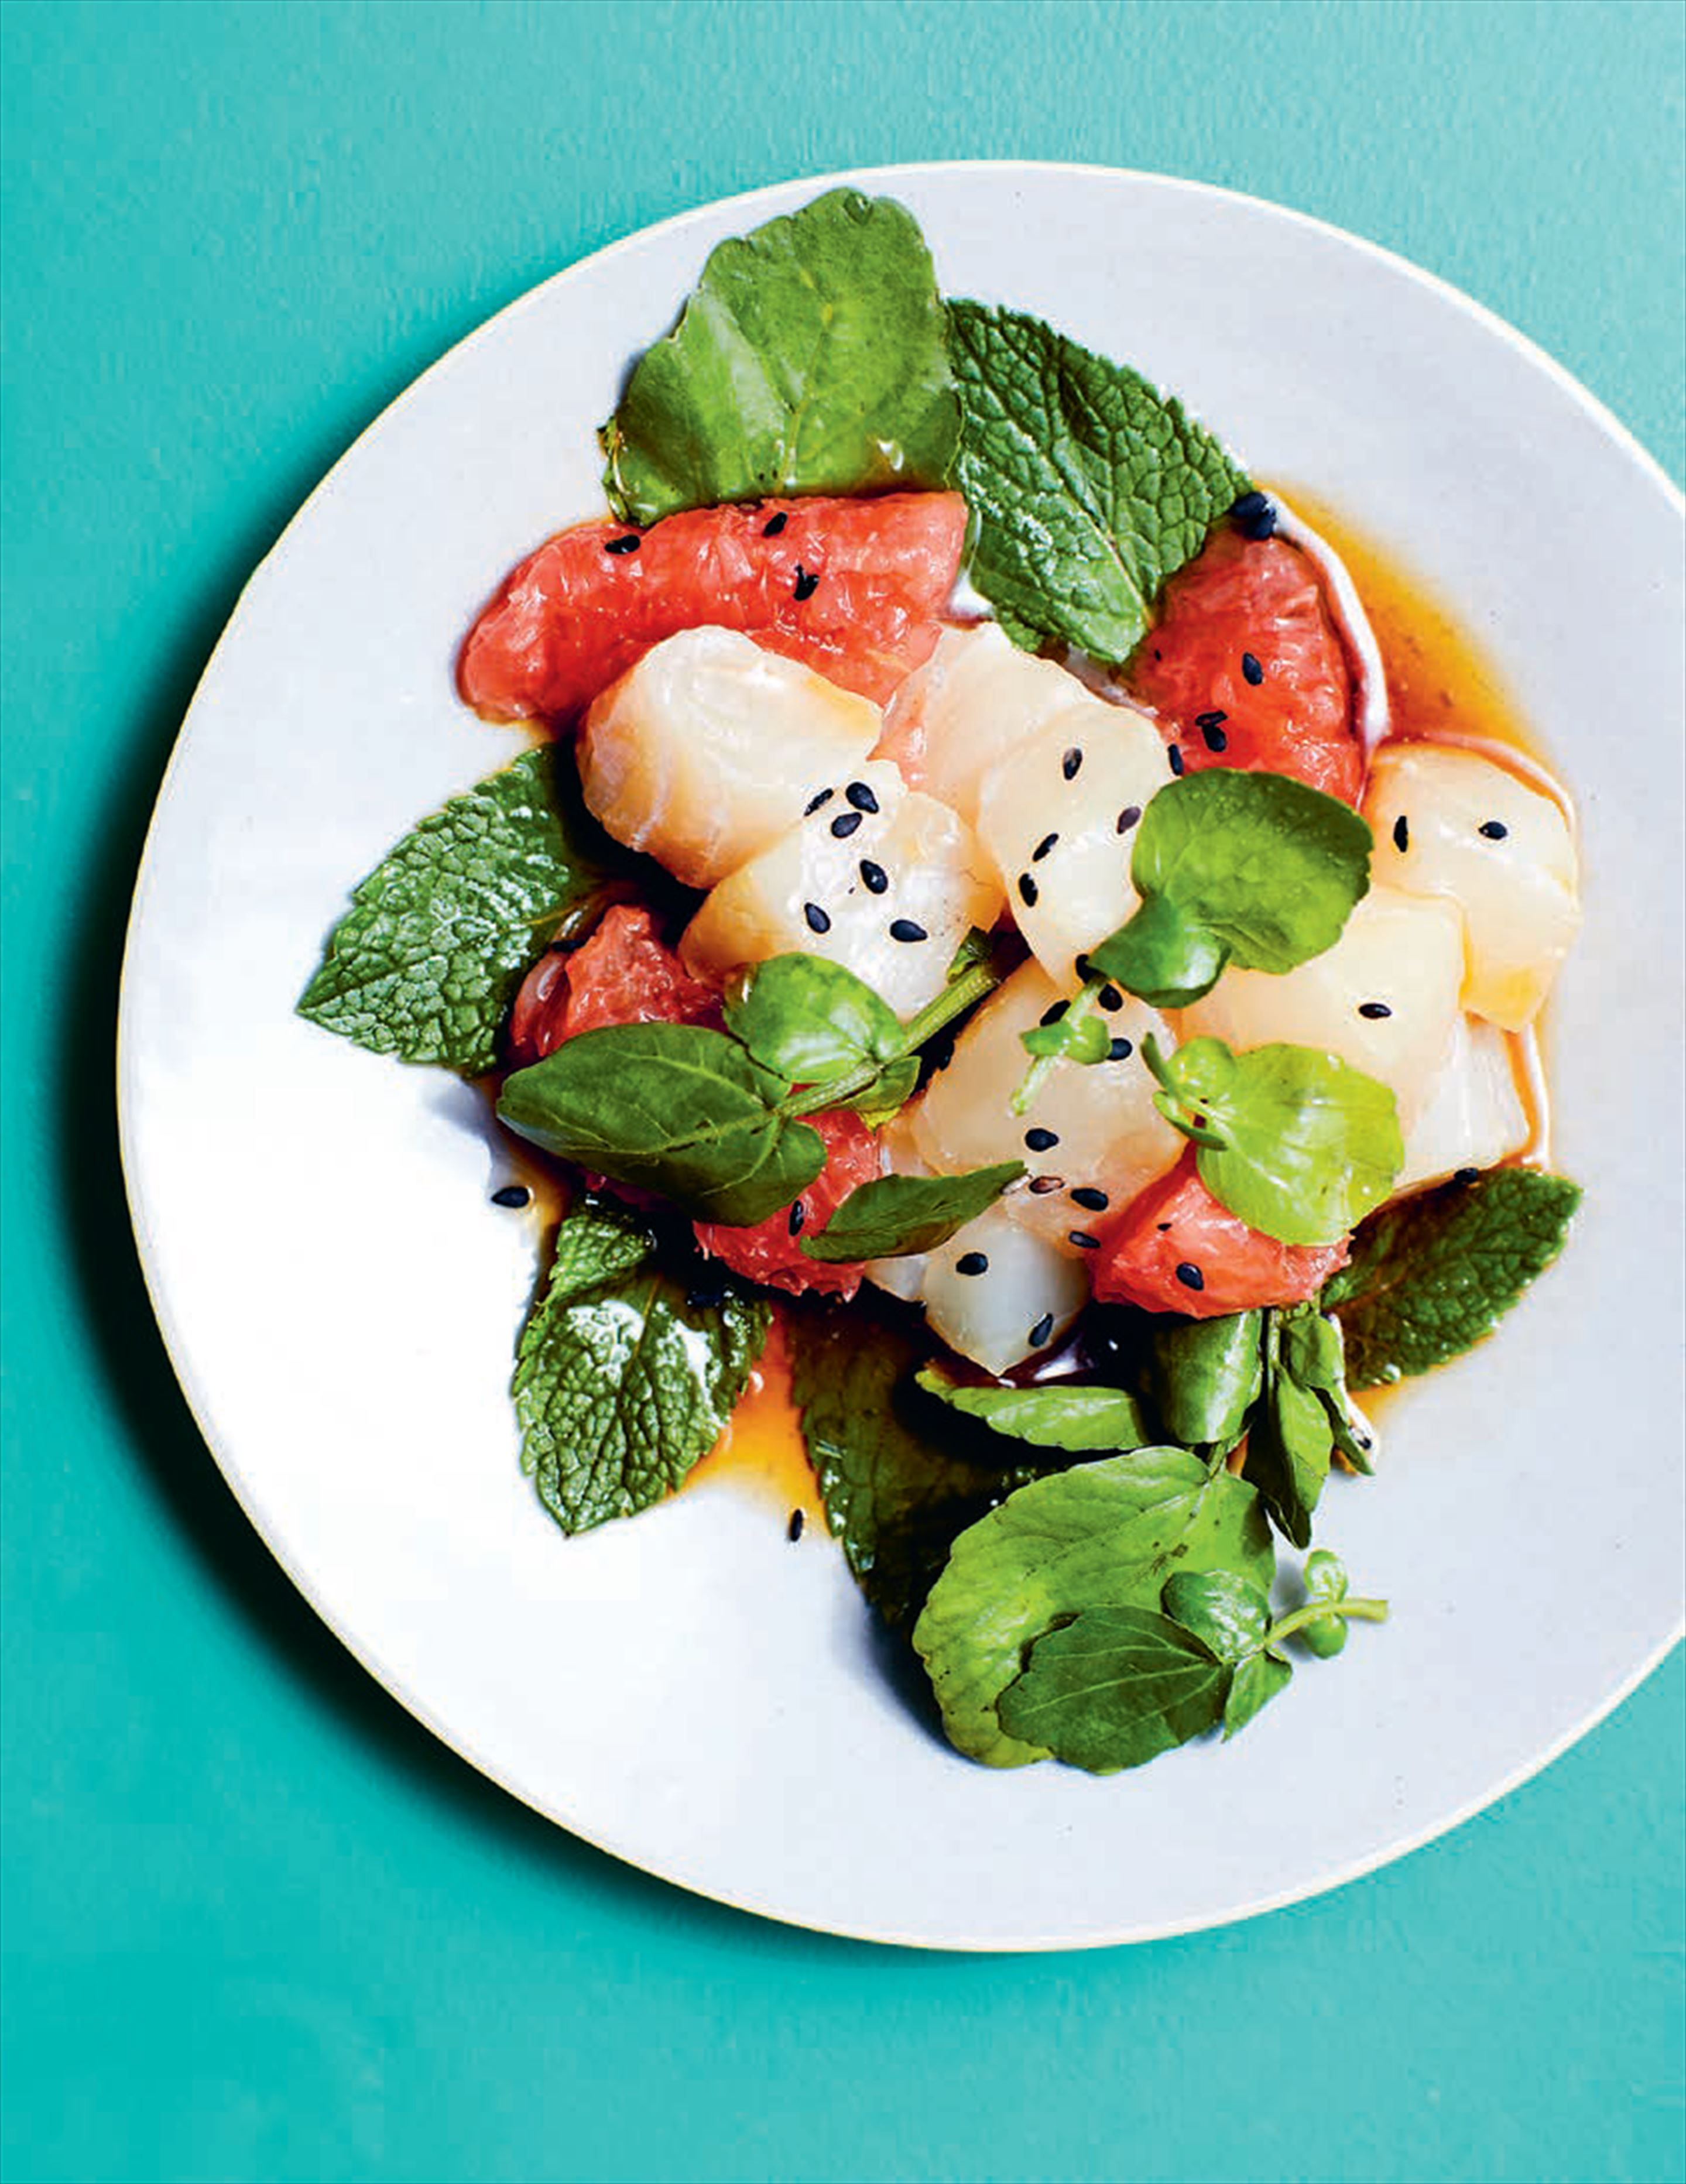 Sour sea bass with grapefruit, mint + baby watercress in a ponzu dressing